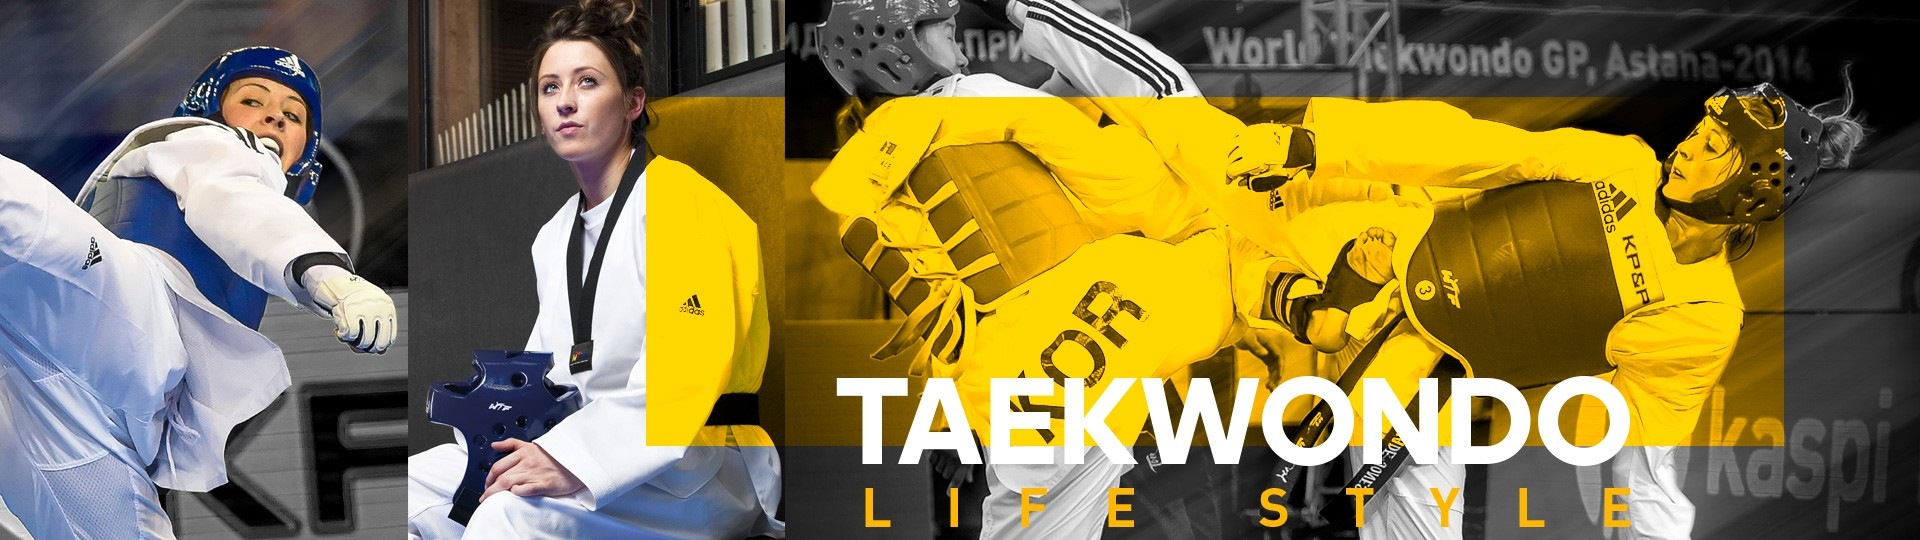 Toute la collection adidas taekwondo